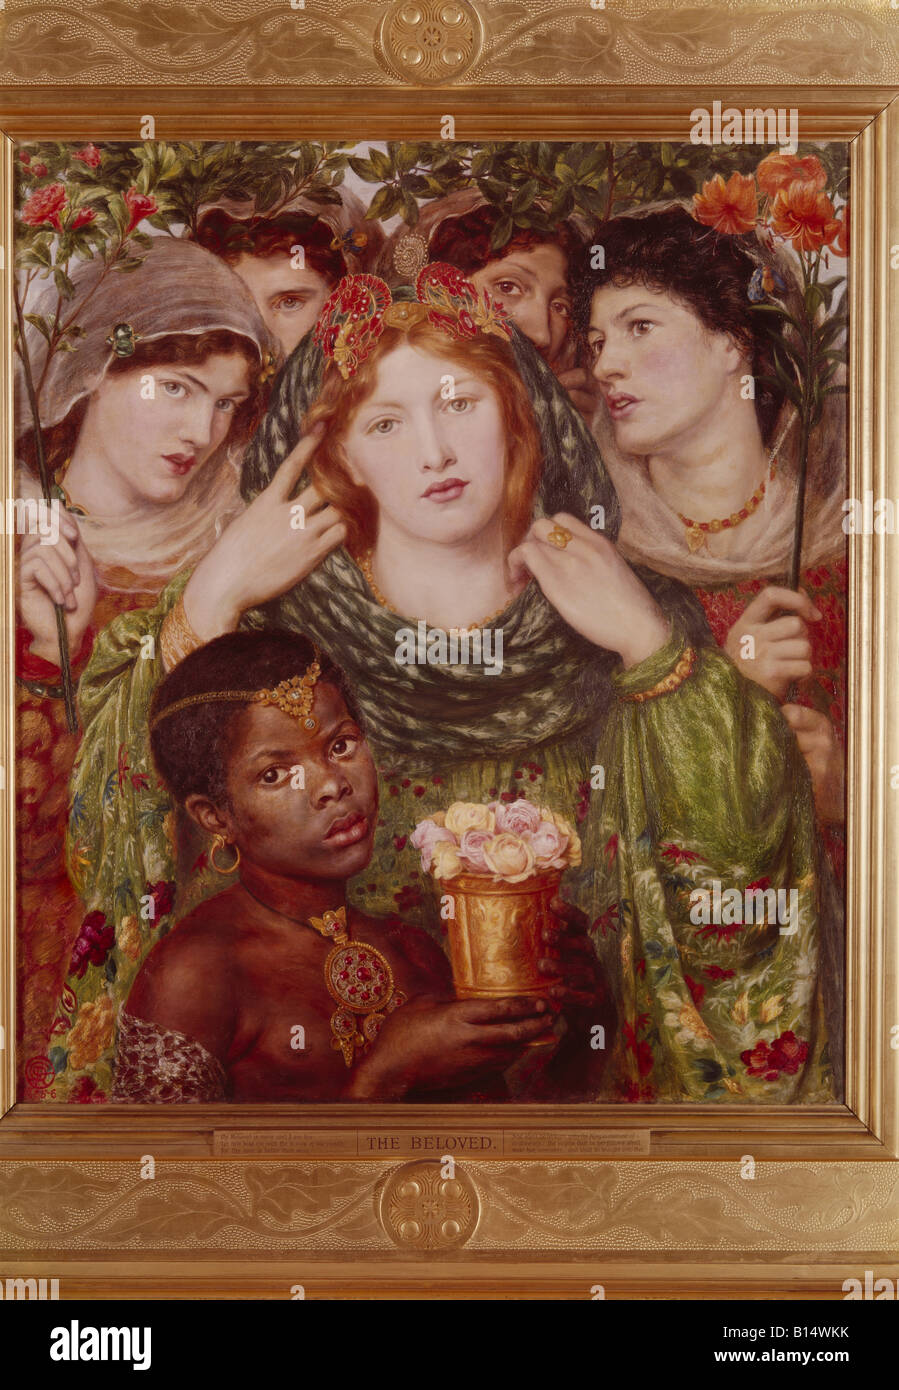 "fine arts - Rossetti, Dante Gabriel (1828 - 1882), painting, ""The Beloved"", 1865 / 66, oil on canvas, Tate Gallery Stock Photo"